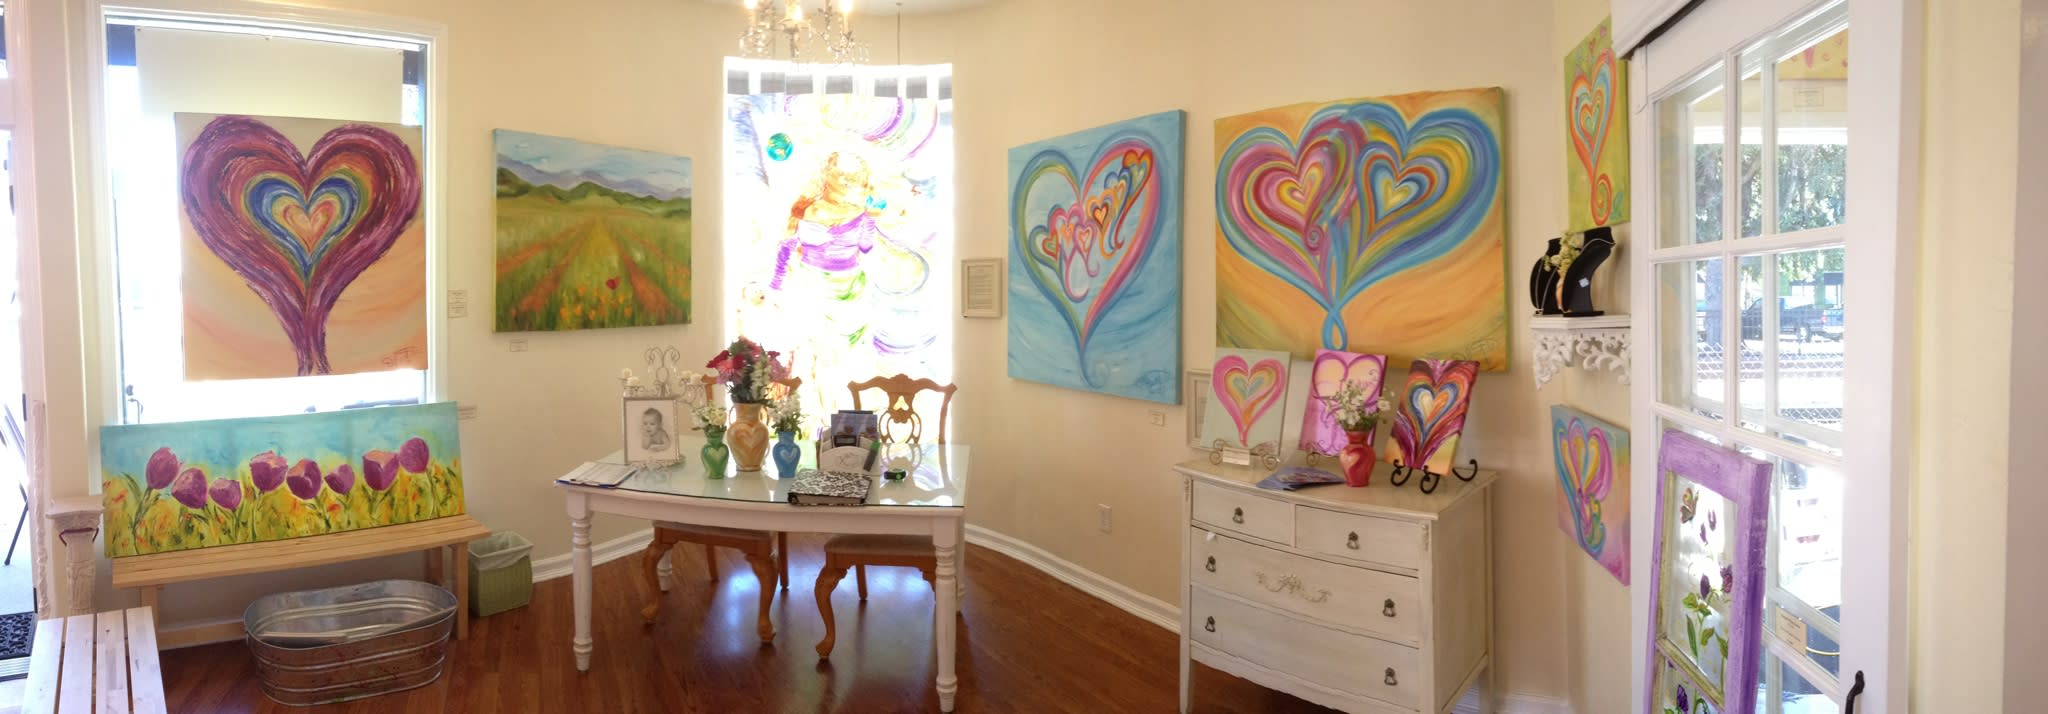 <div class='title'>           The Heart Artist HeartworksGallery         </div>